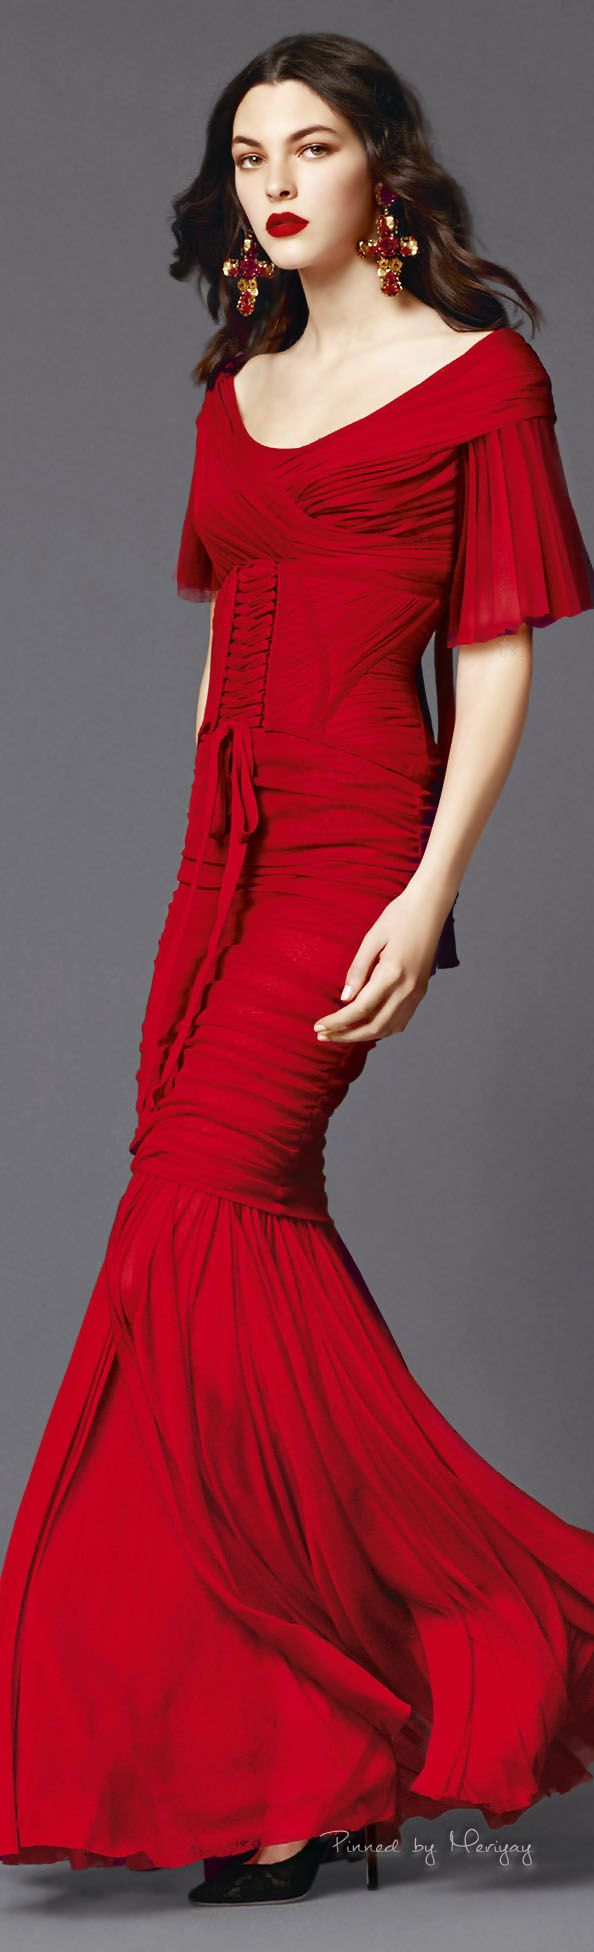 J adore red dress meaning